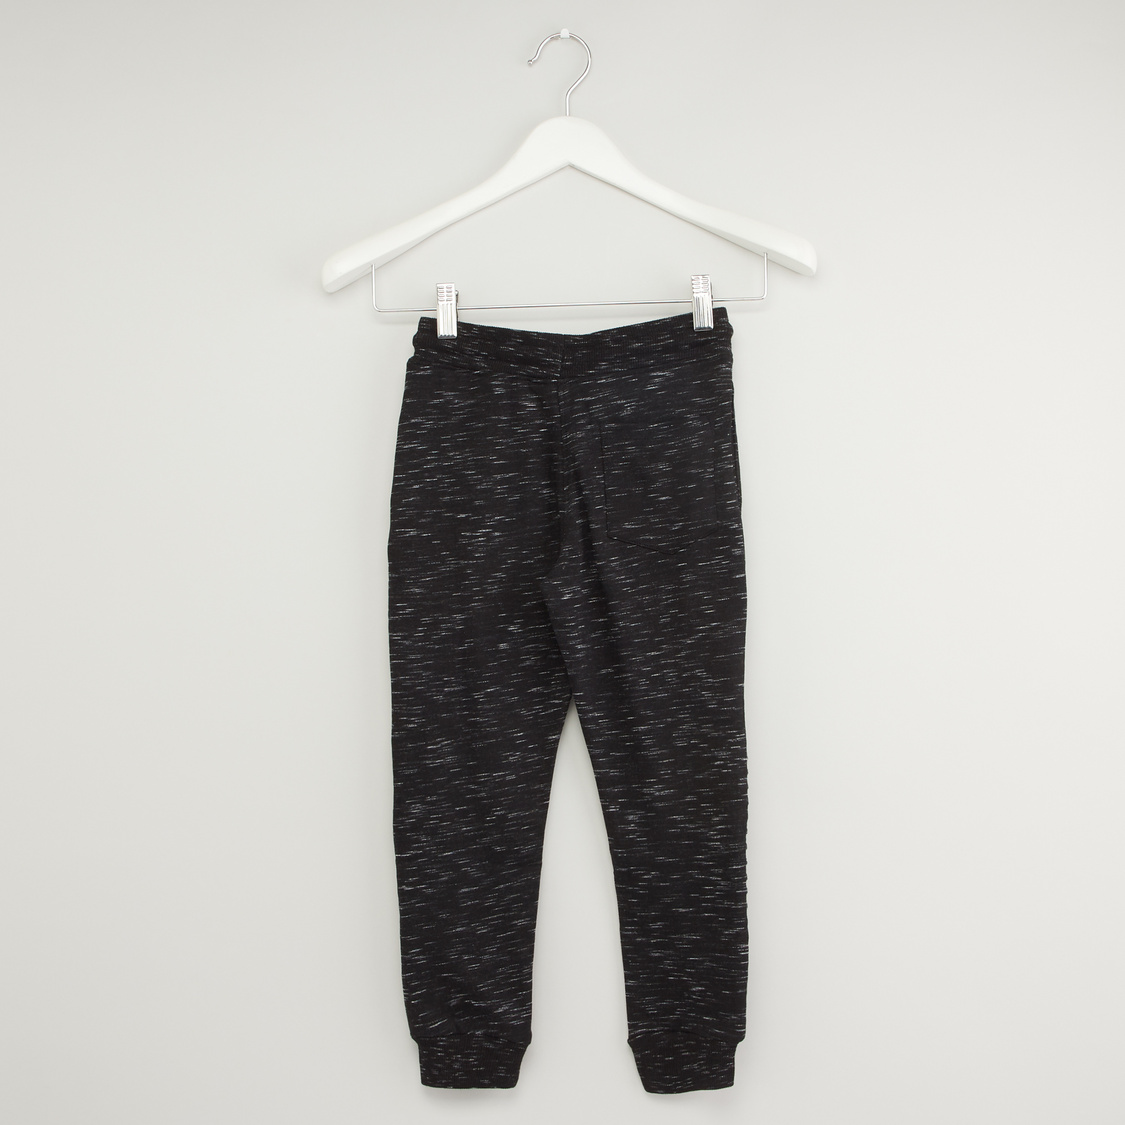 Full Length Jog Pants with Pocket and Applique Detail